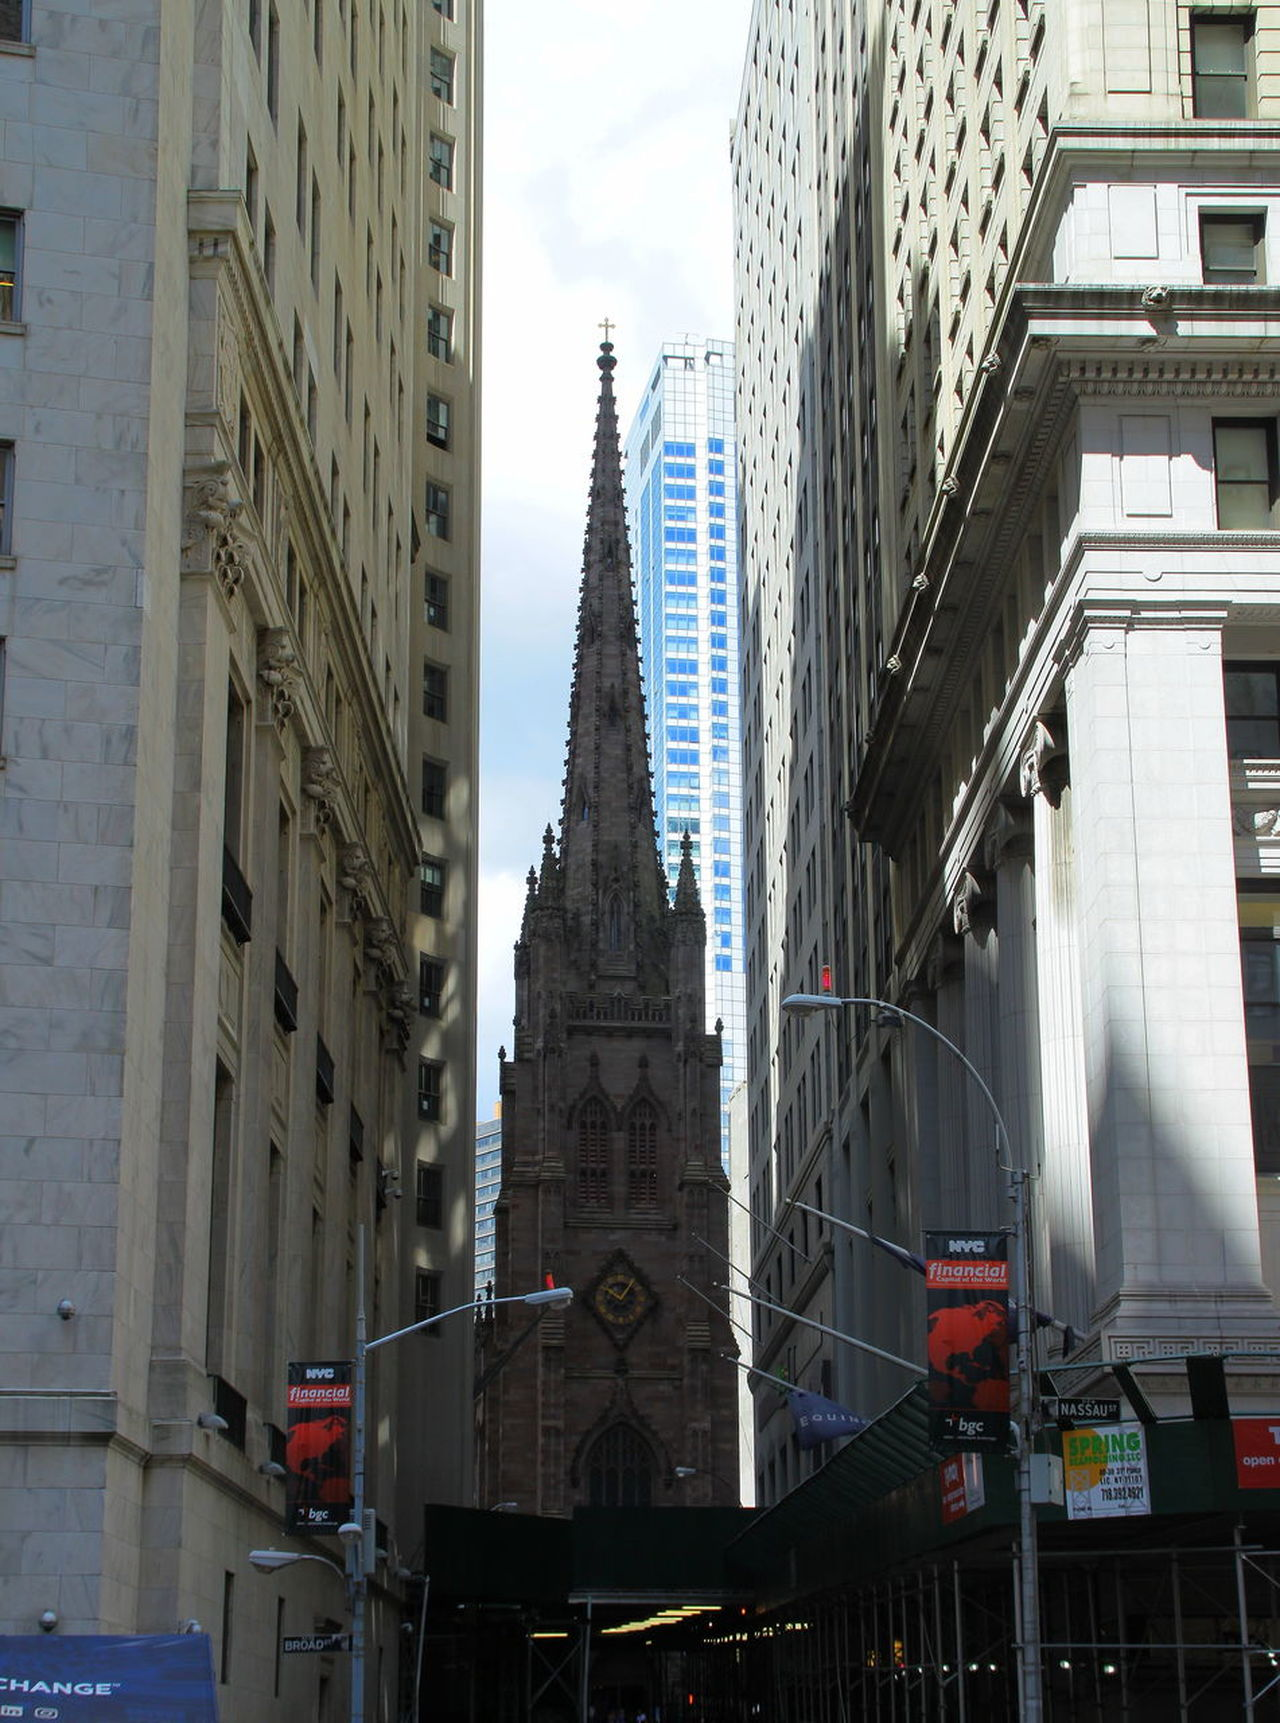 Church Church Tower Manhattan New York City Skyscrapers Wall Street In New York City Architecture Building Exterior Built Structure City Heights Lower Manhattan No People St Trinity Church Street Tower Wall Street